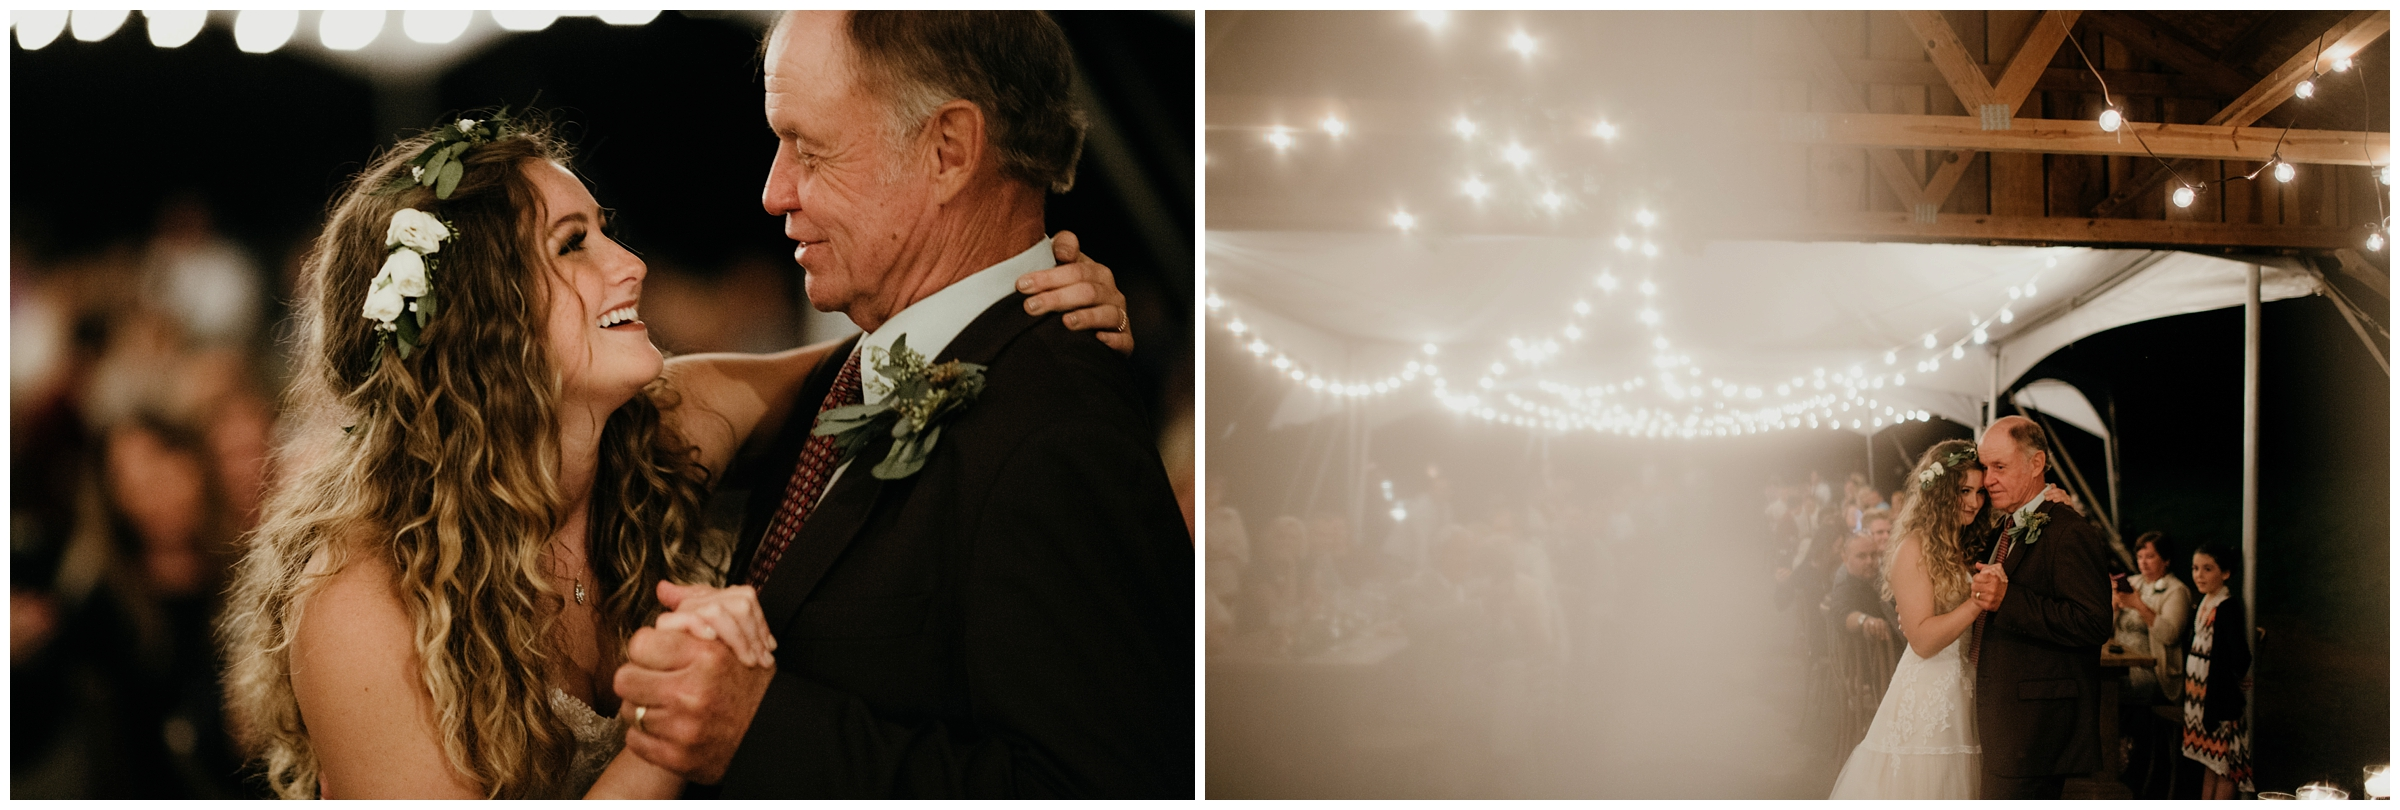 bride dances with grandfather